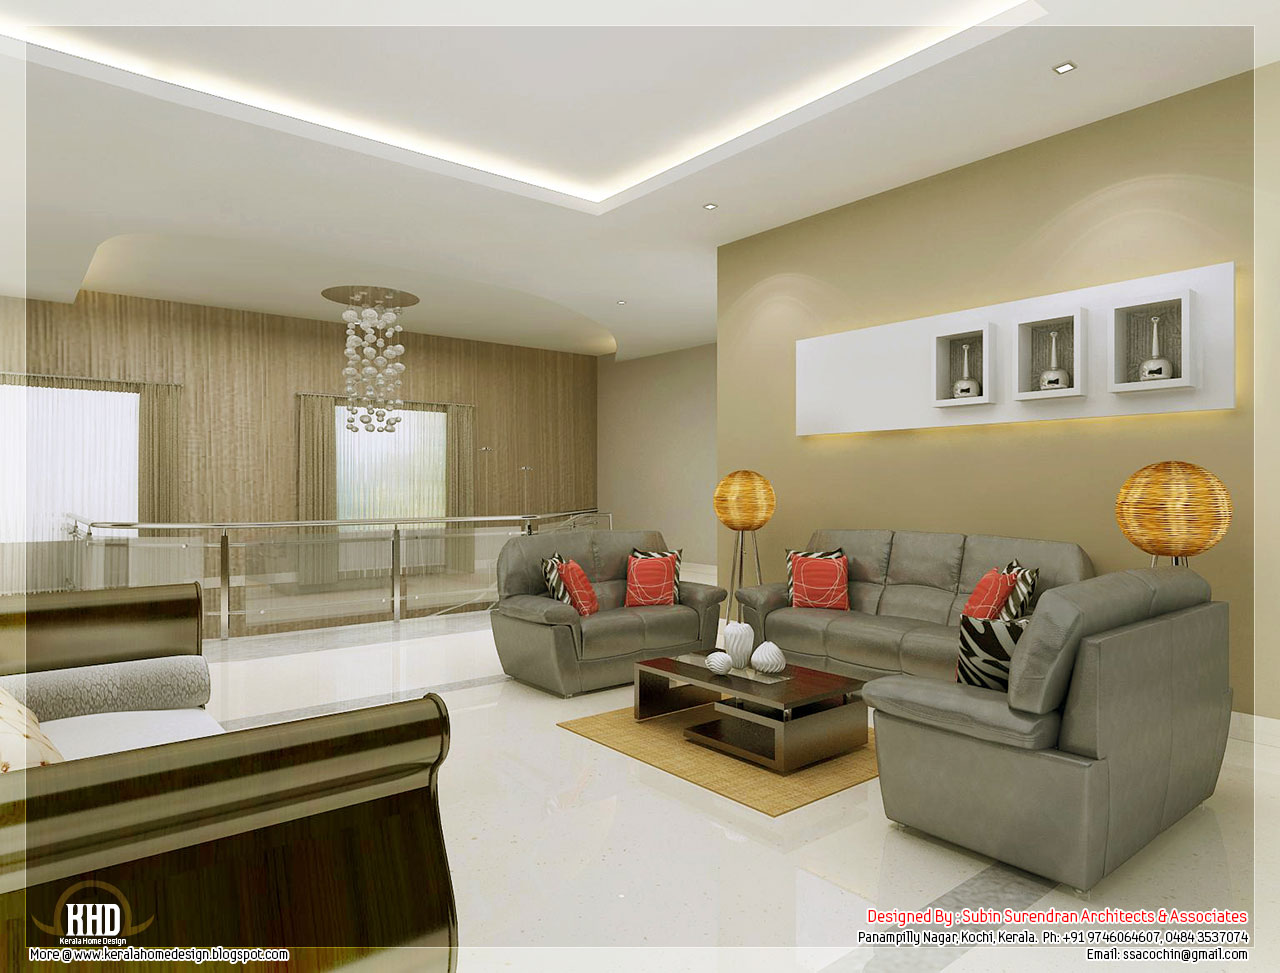 Awesome 3d interior renderings kerala home design and for Simple interior design ideas for indian homes